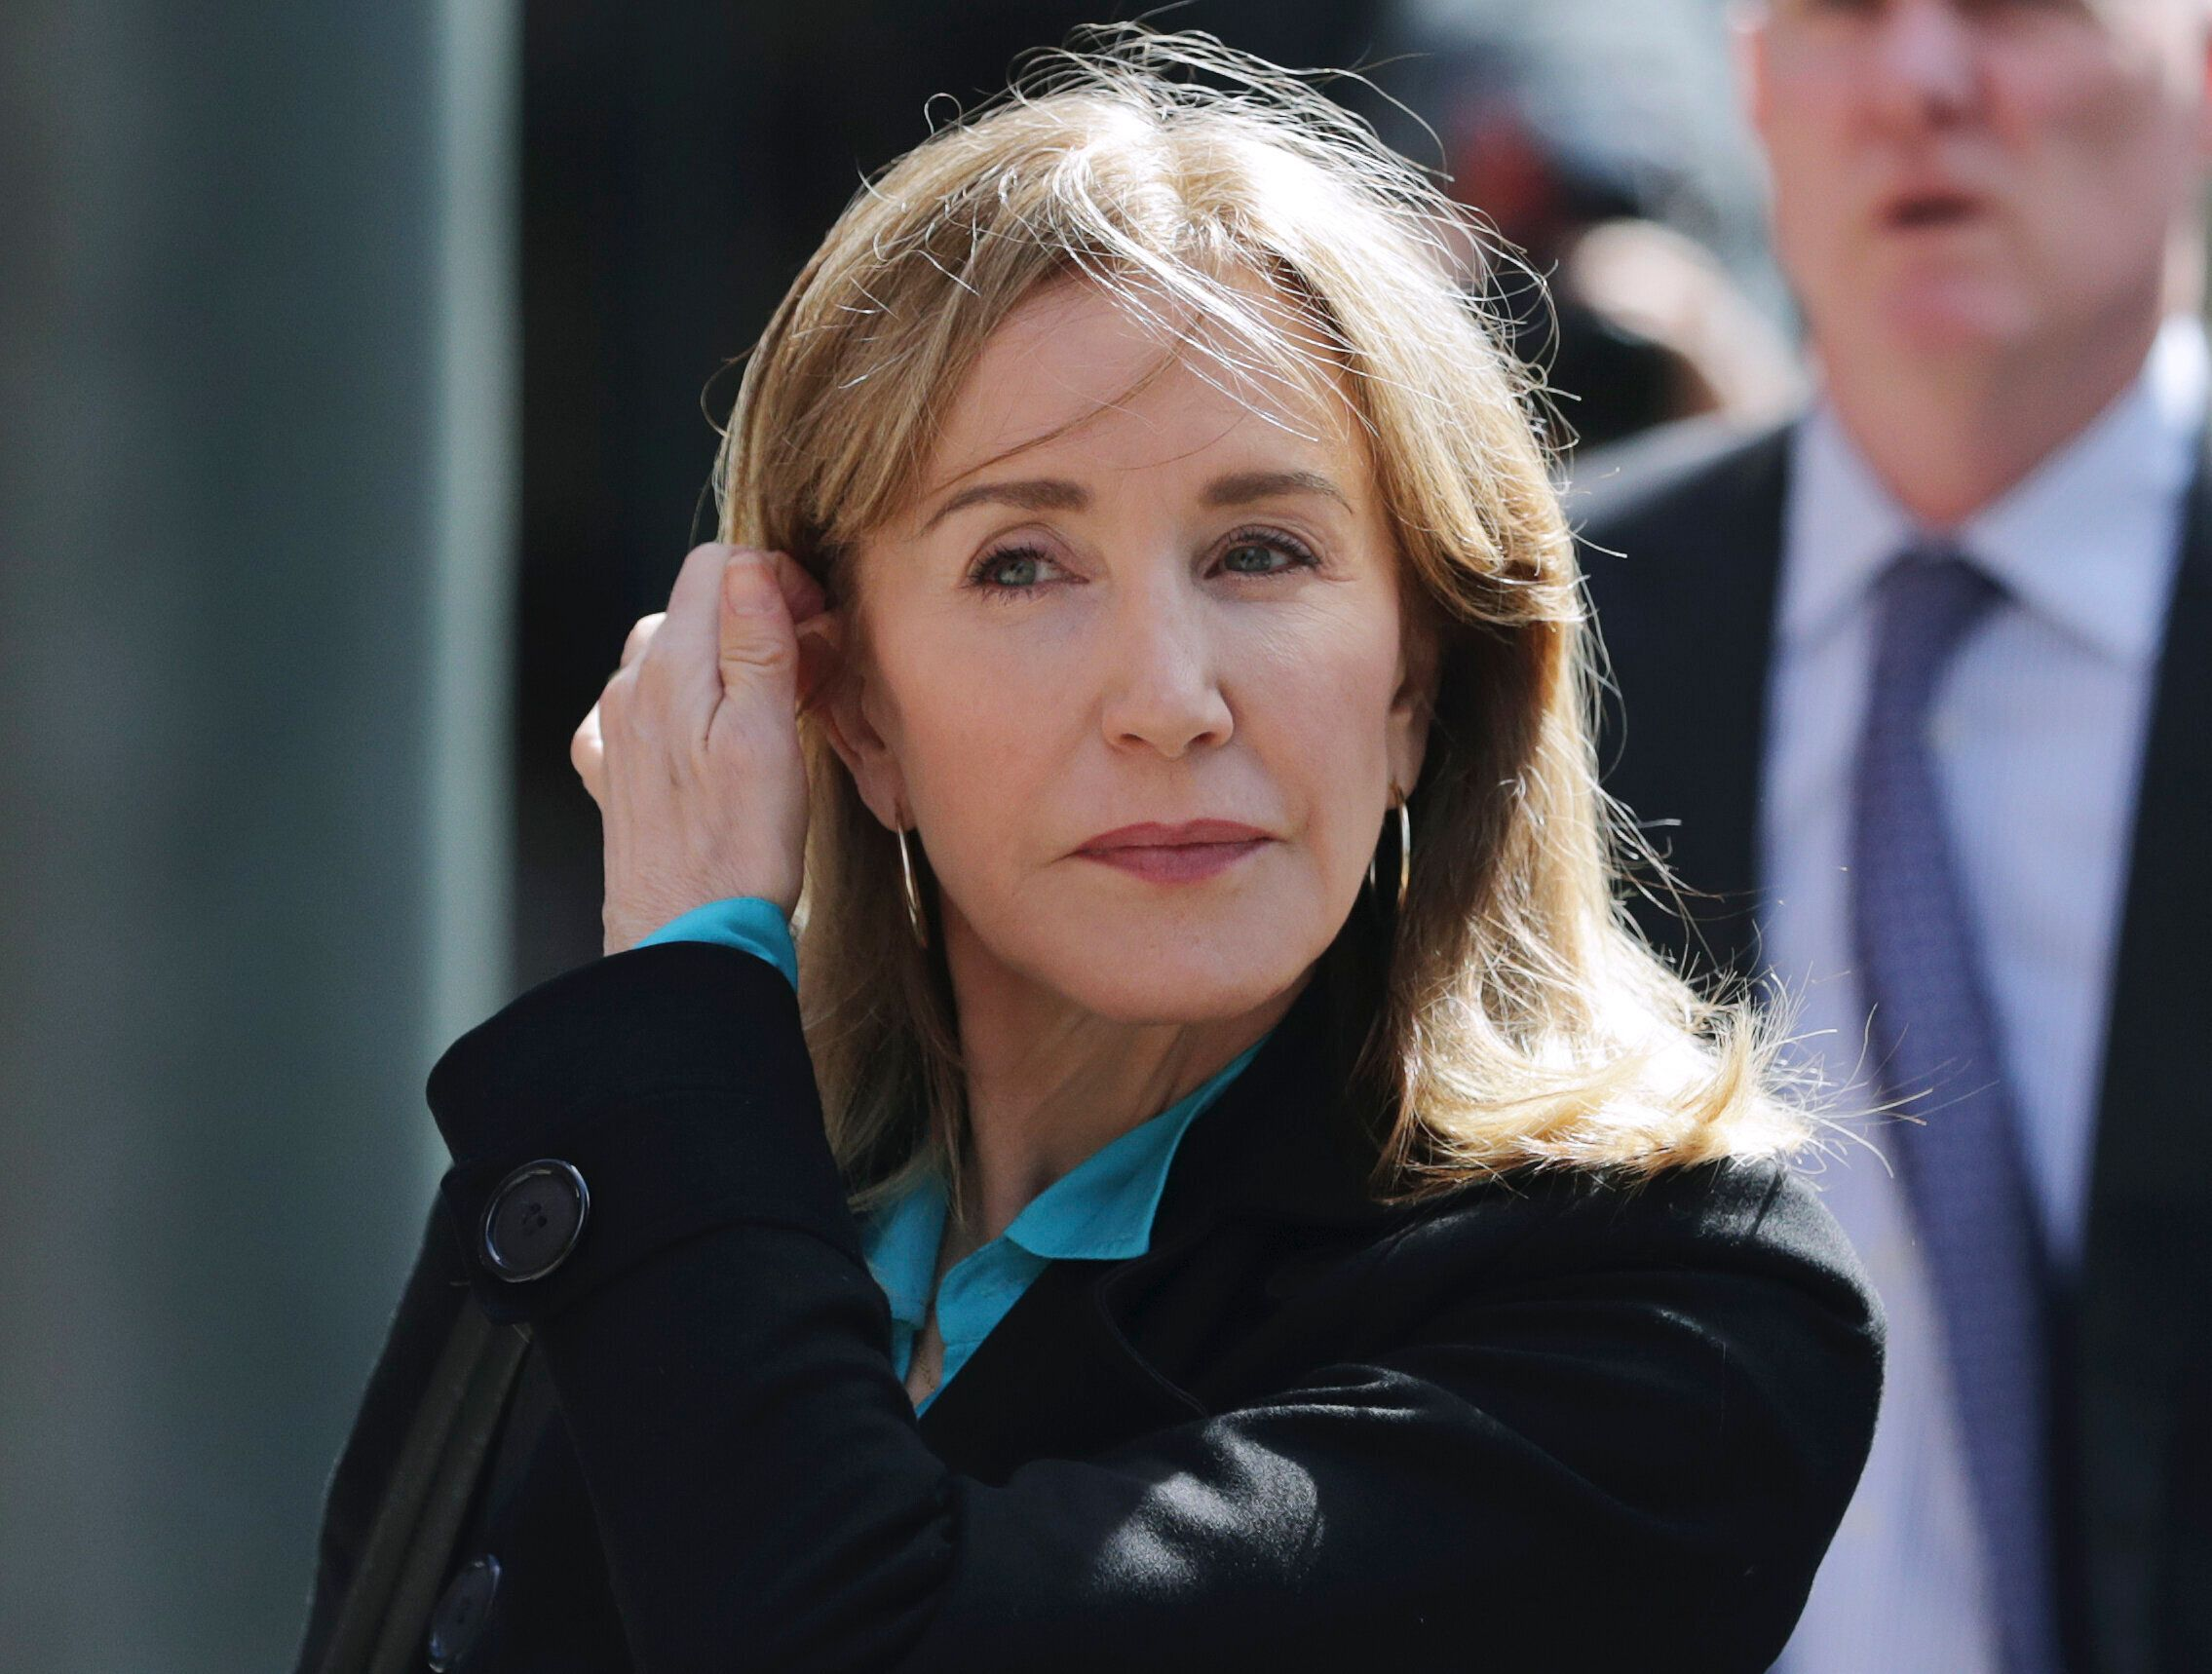 FILE - In this April 3, 2019 file photo, actress Felicity Huffman arrives at federal court in Boston to face charges in a nationwide college admissions bribery scandal. On Monday, May 13, 2019, Huffman is expected to plead guilty to charges that she took part in the cheating scam. (AP Photo/Charles Krupa, File)